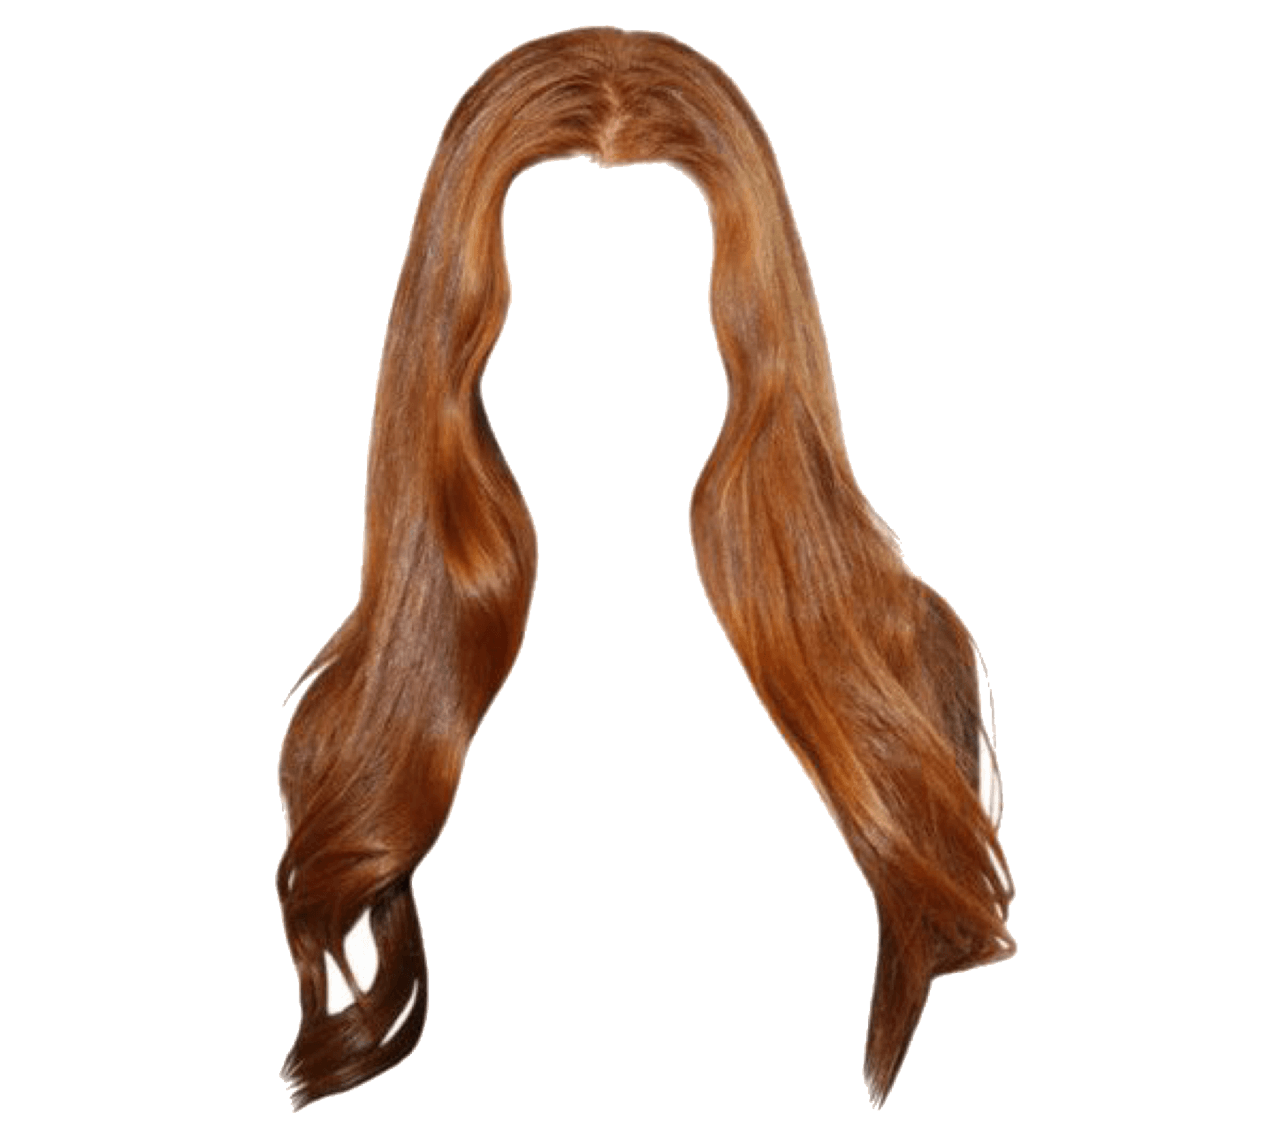 Redhead/Ginger hair png